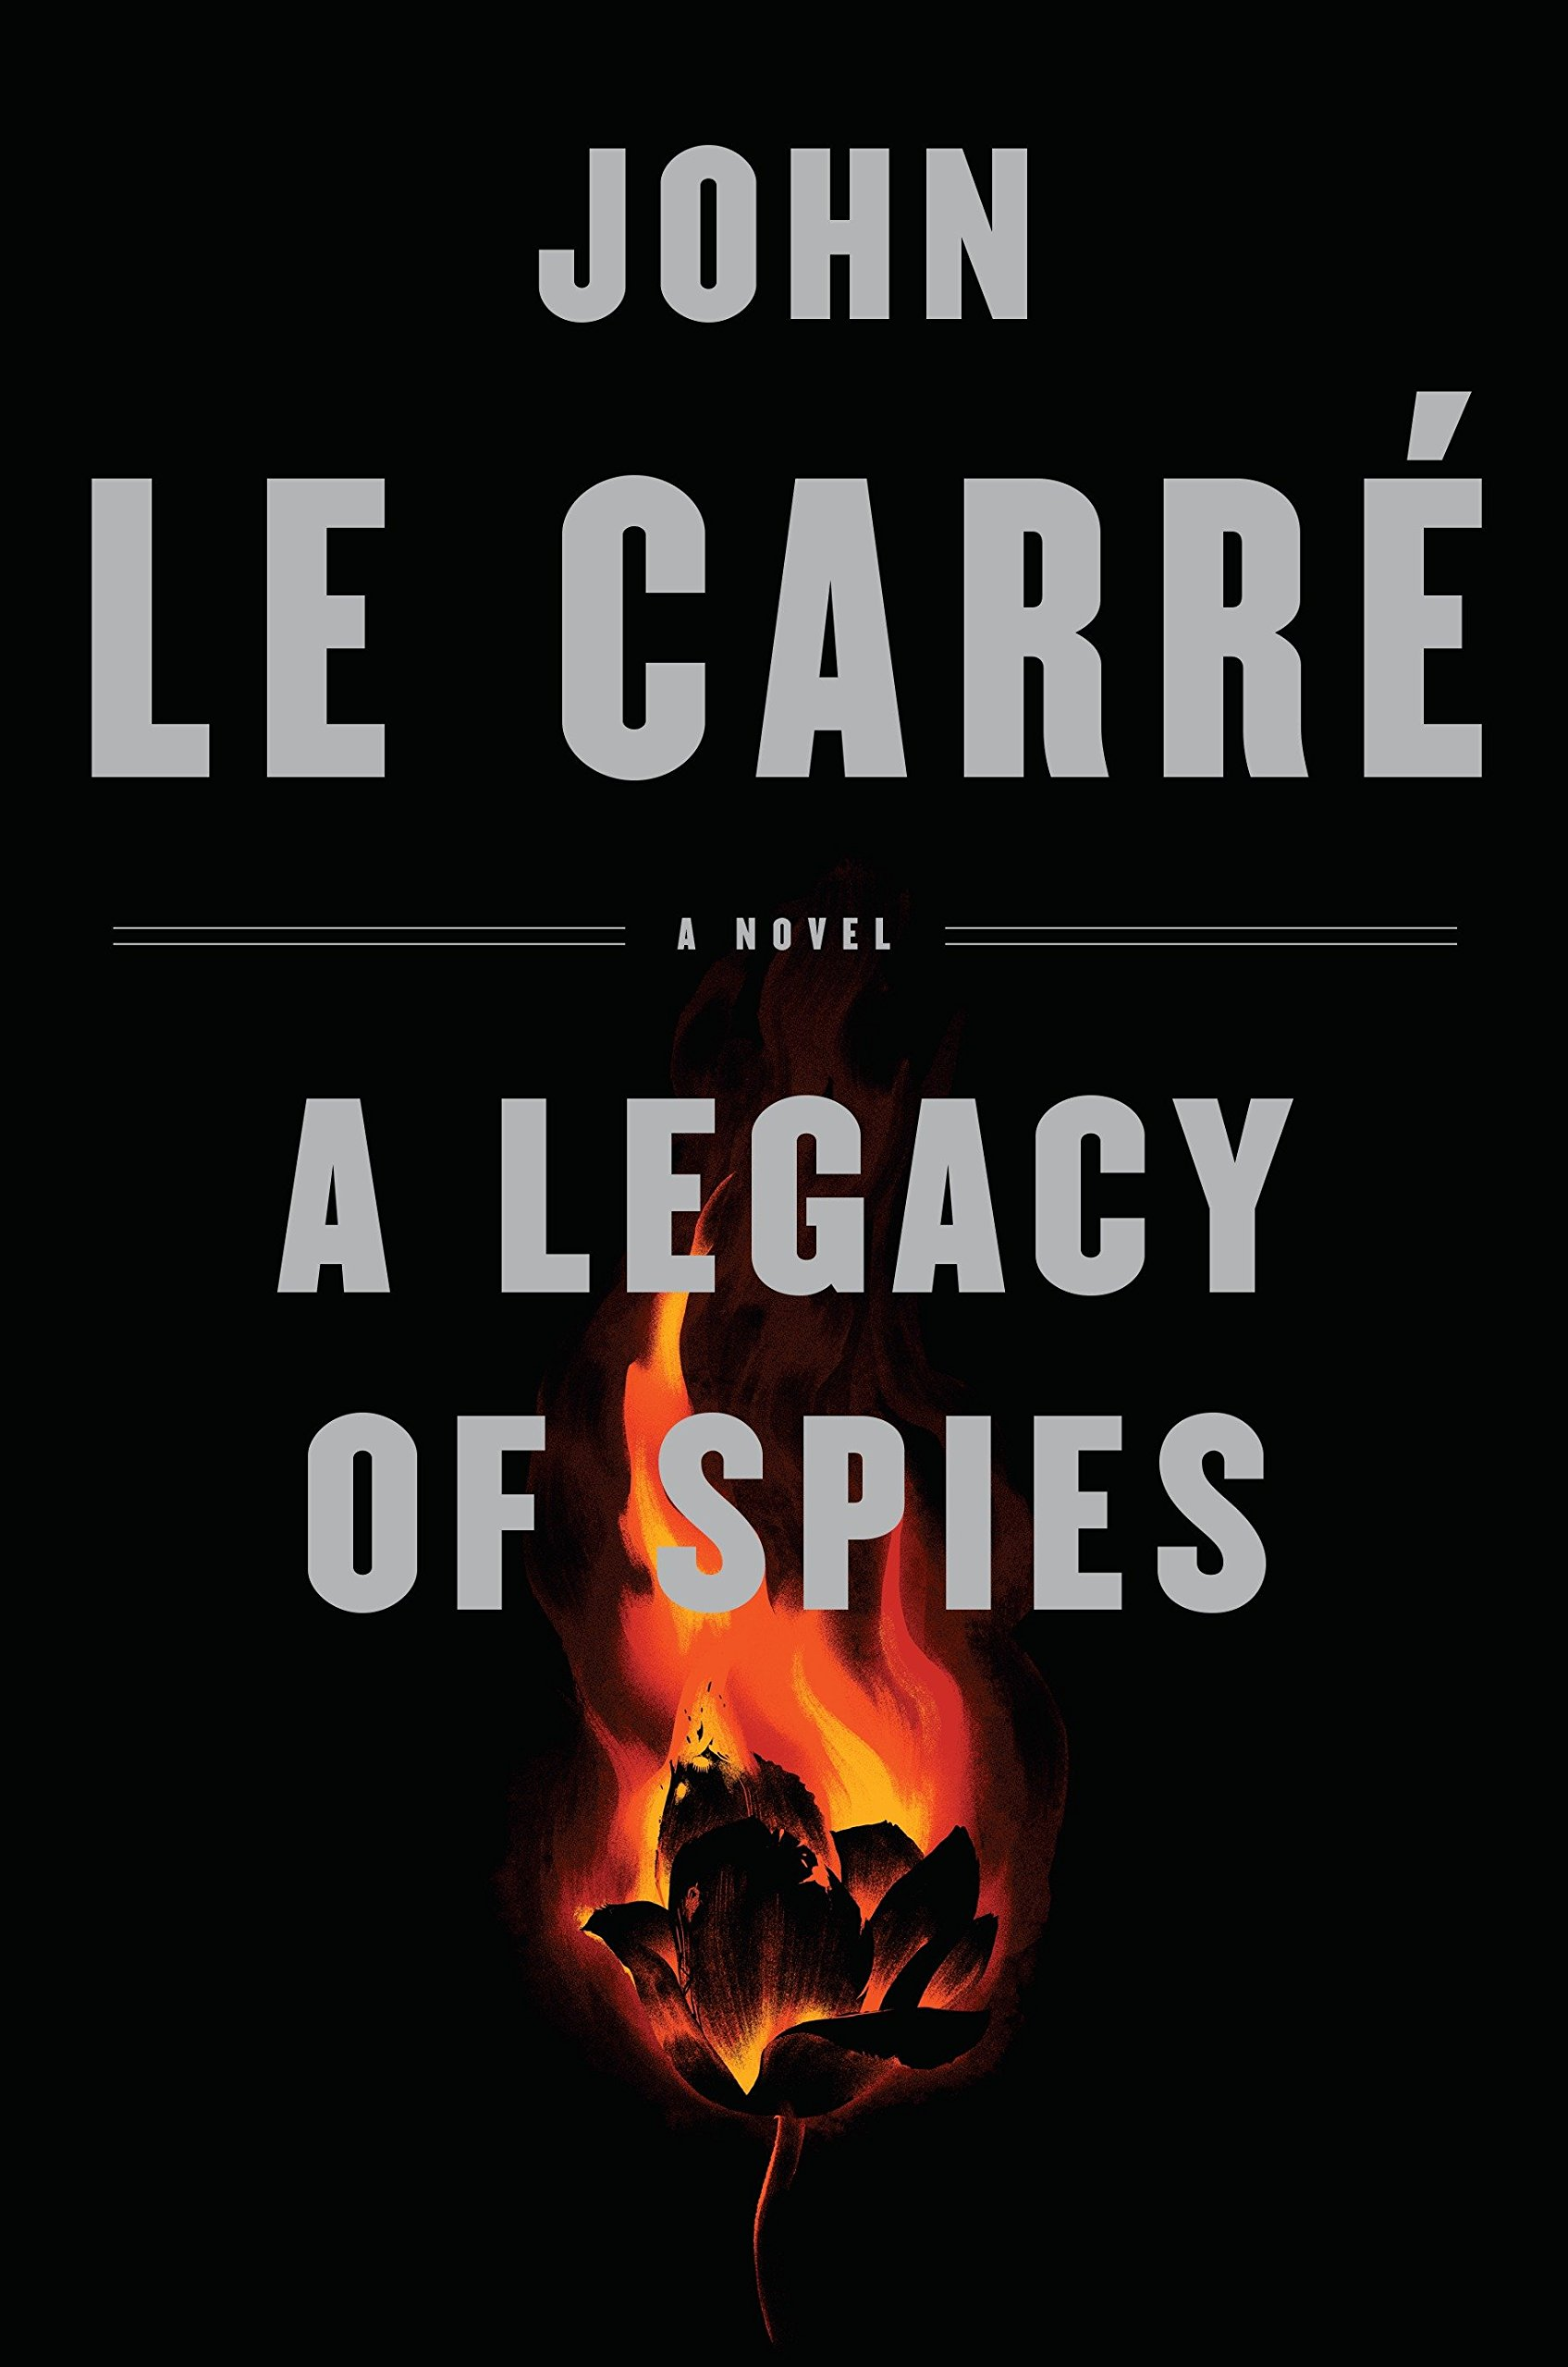 Amazon Com A Legacy Of Spies A Novel 9780735225114 John Le